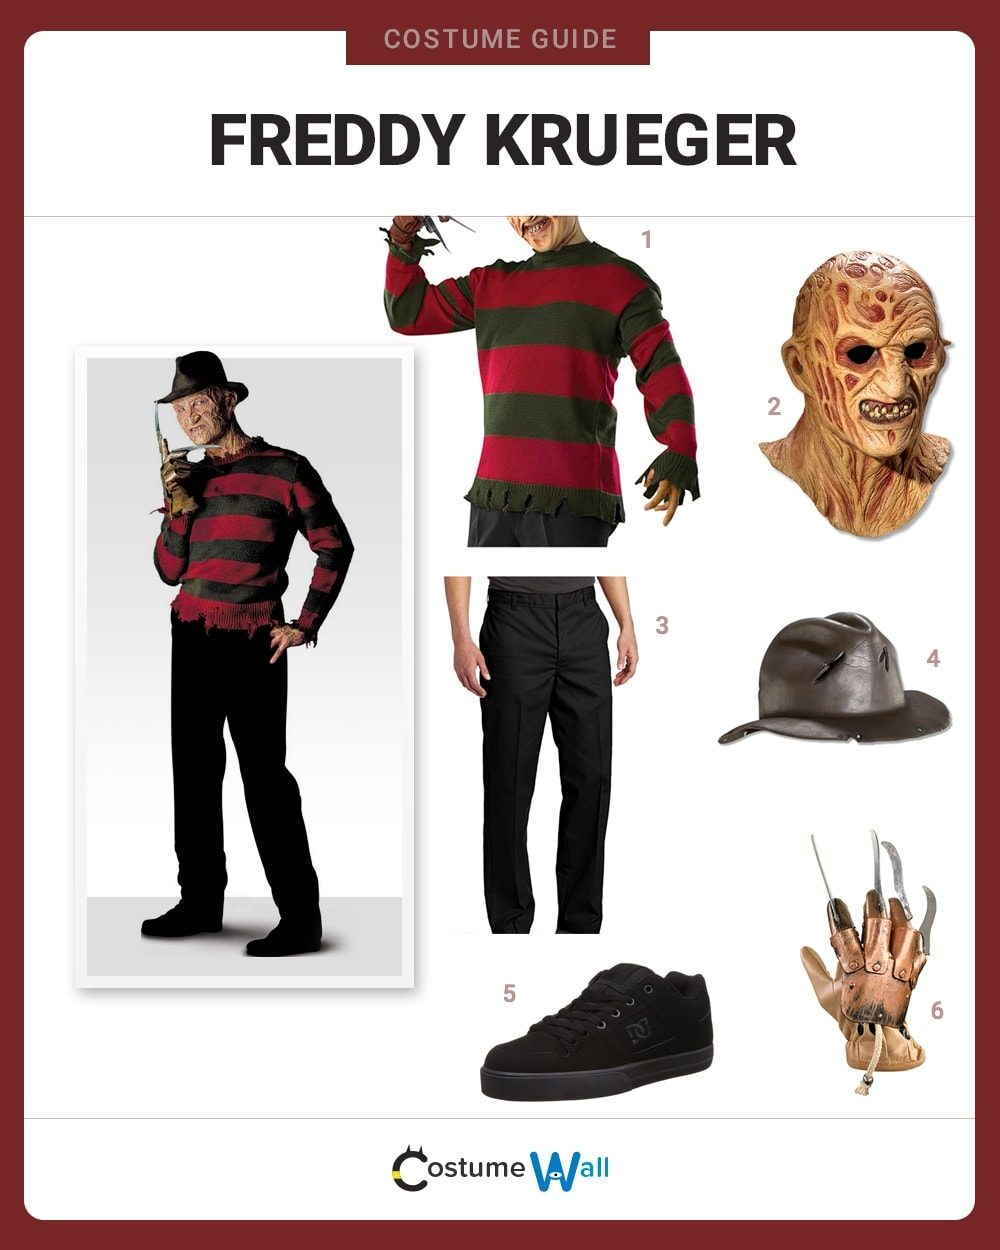 dress like freddy krueger costume | halloween and cosplay guides